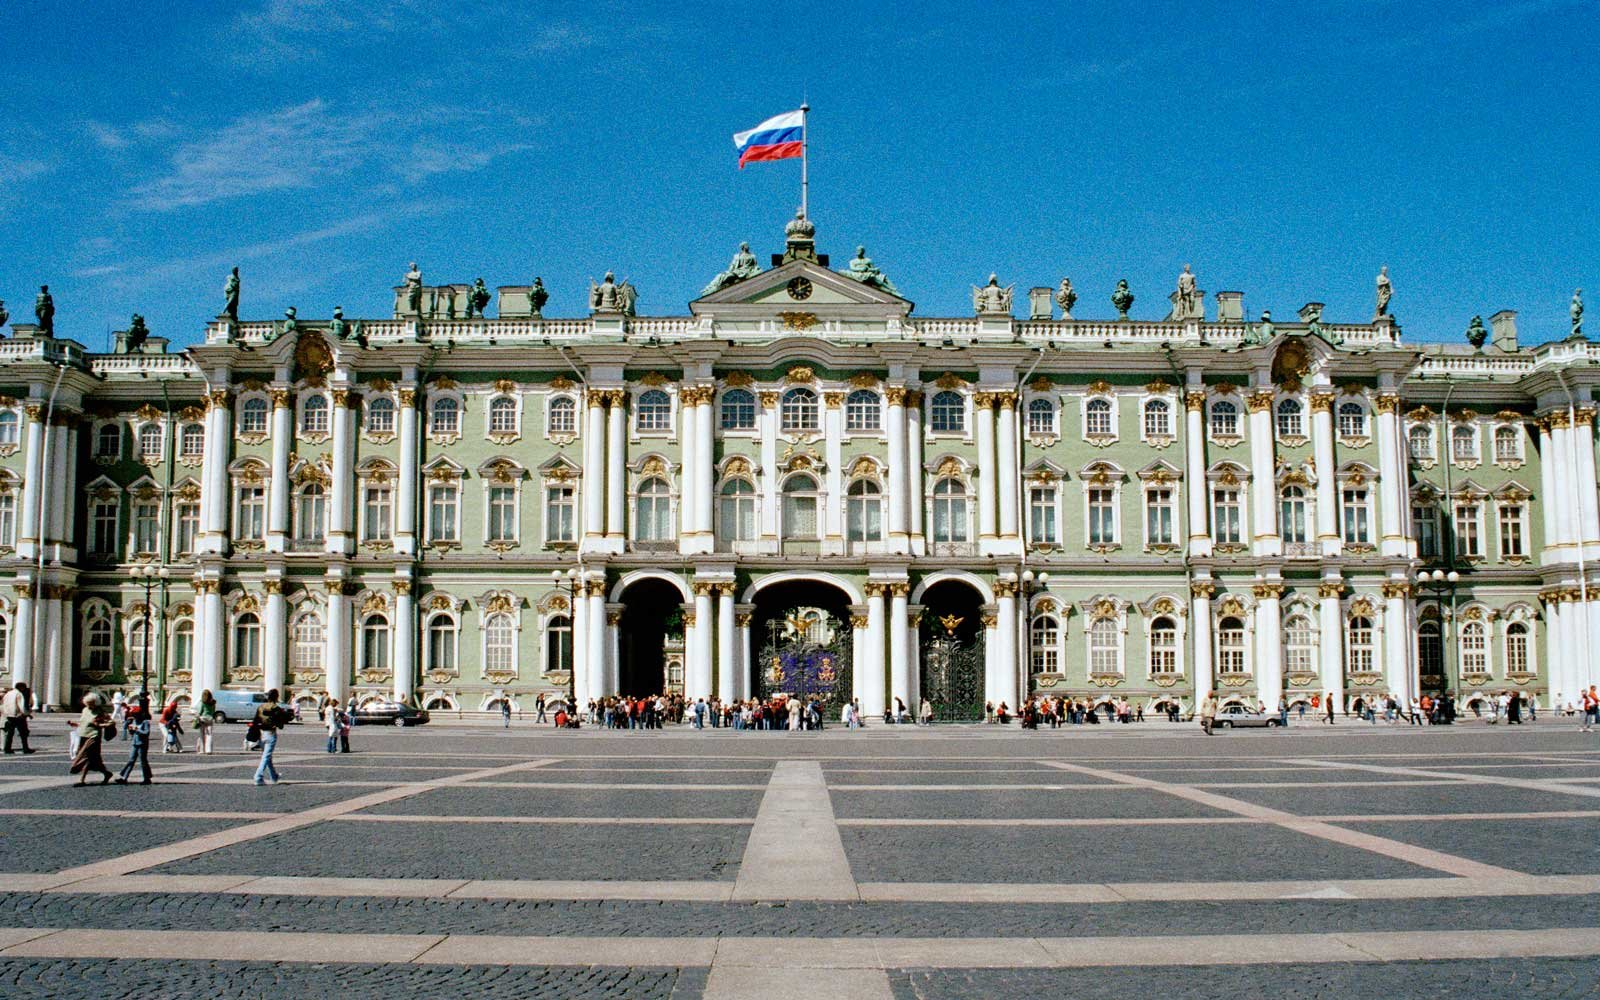 Facade of the Winter Palace of the Hermitage Museum, St. Petersburg, Russia